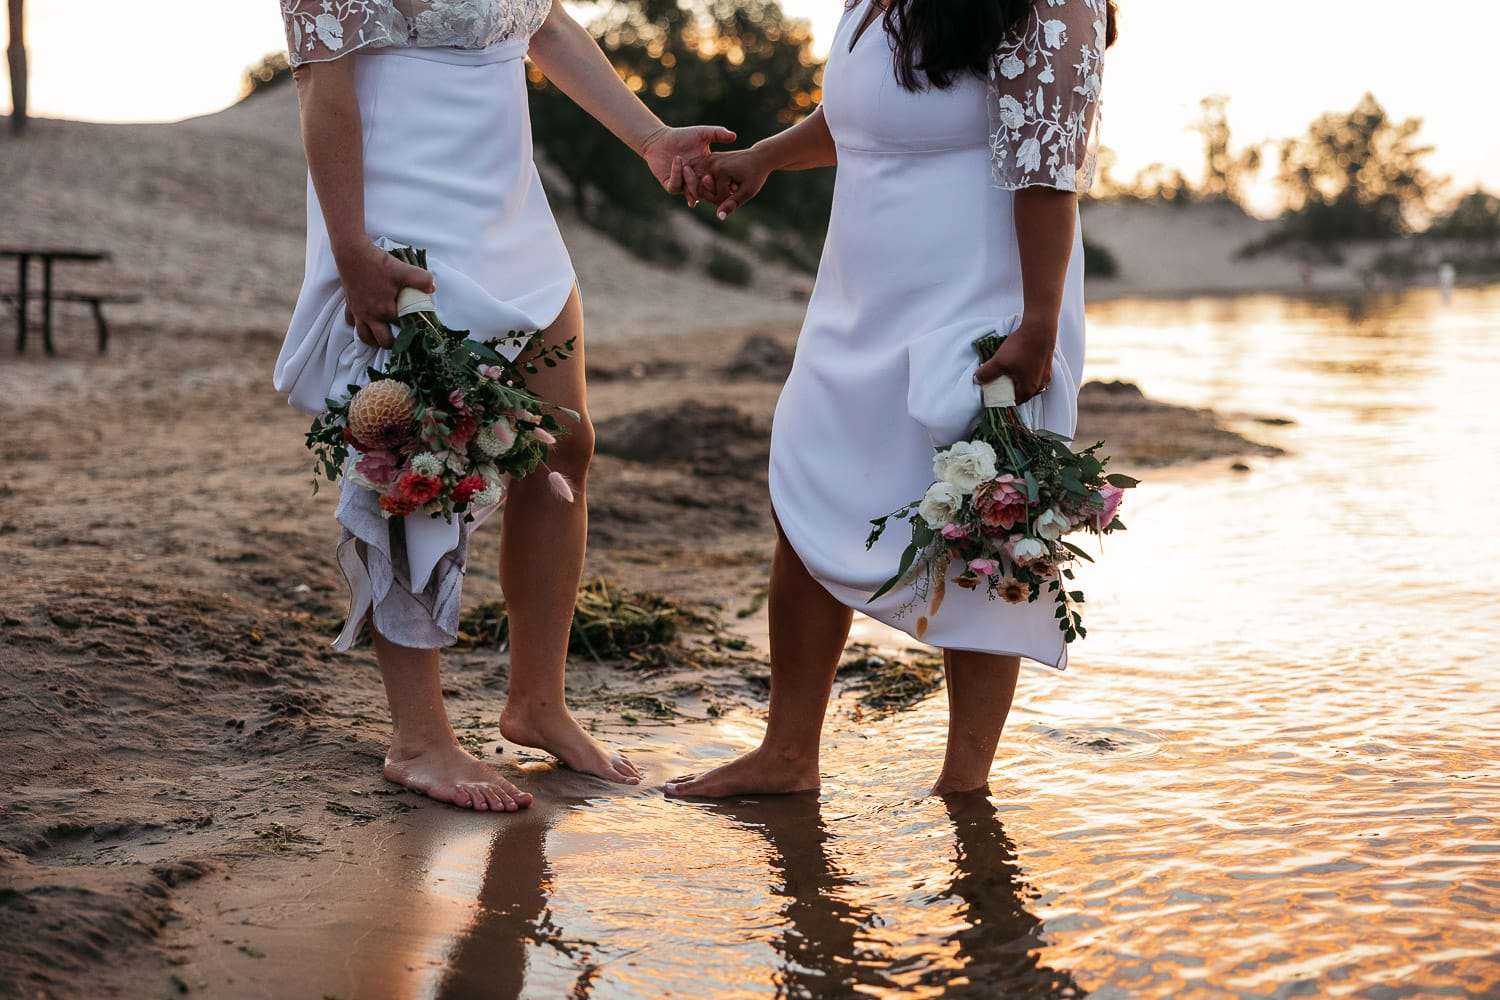 barefoot brides with bouquets at sandbanks dune beach